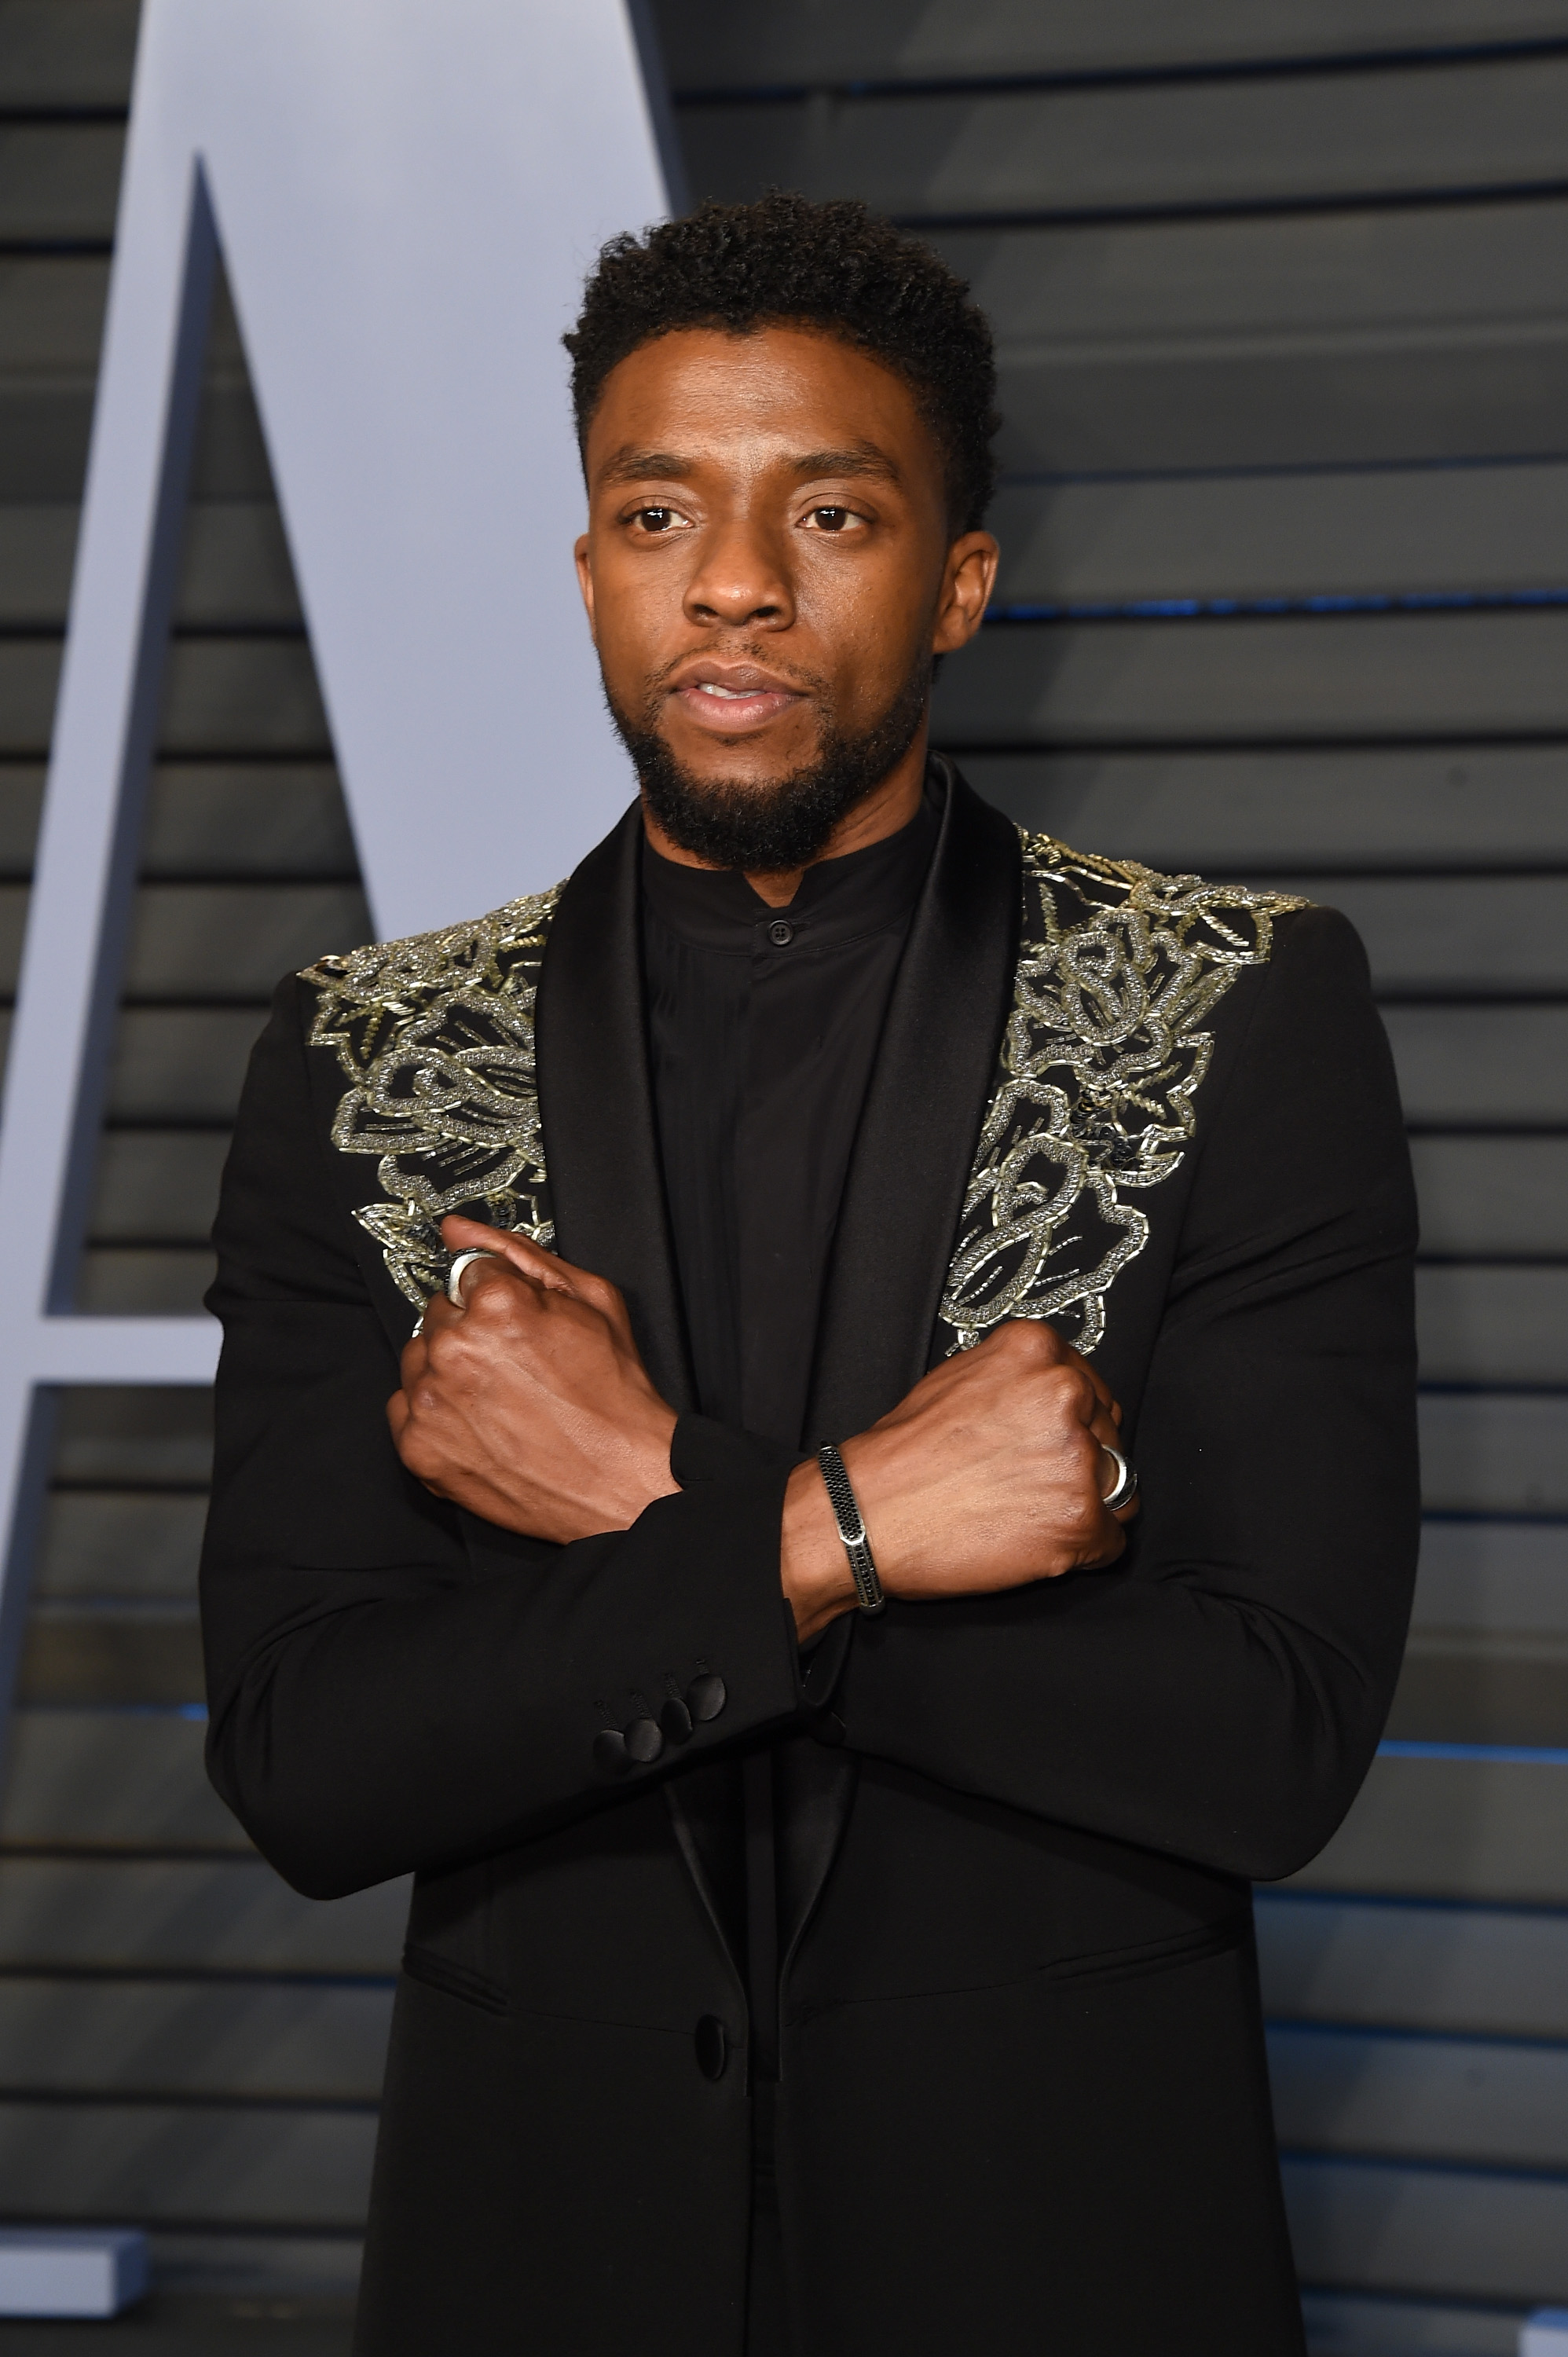 How To Do The Black Panther Handshake From The Movie Hellogiggles